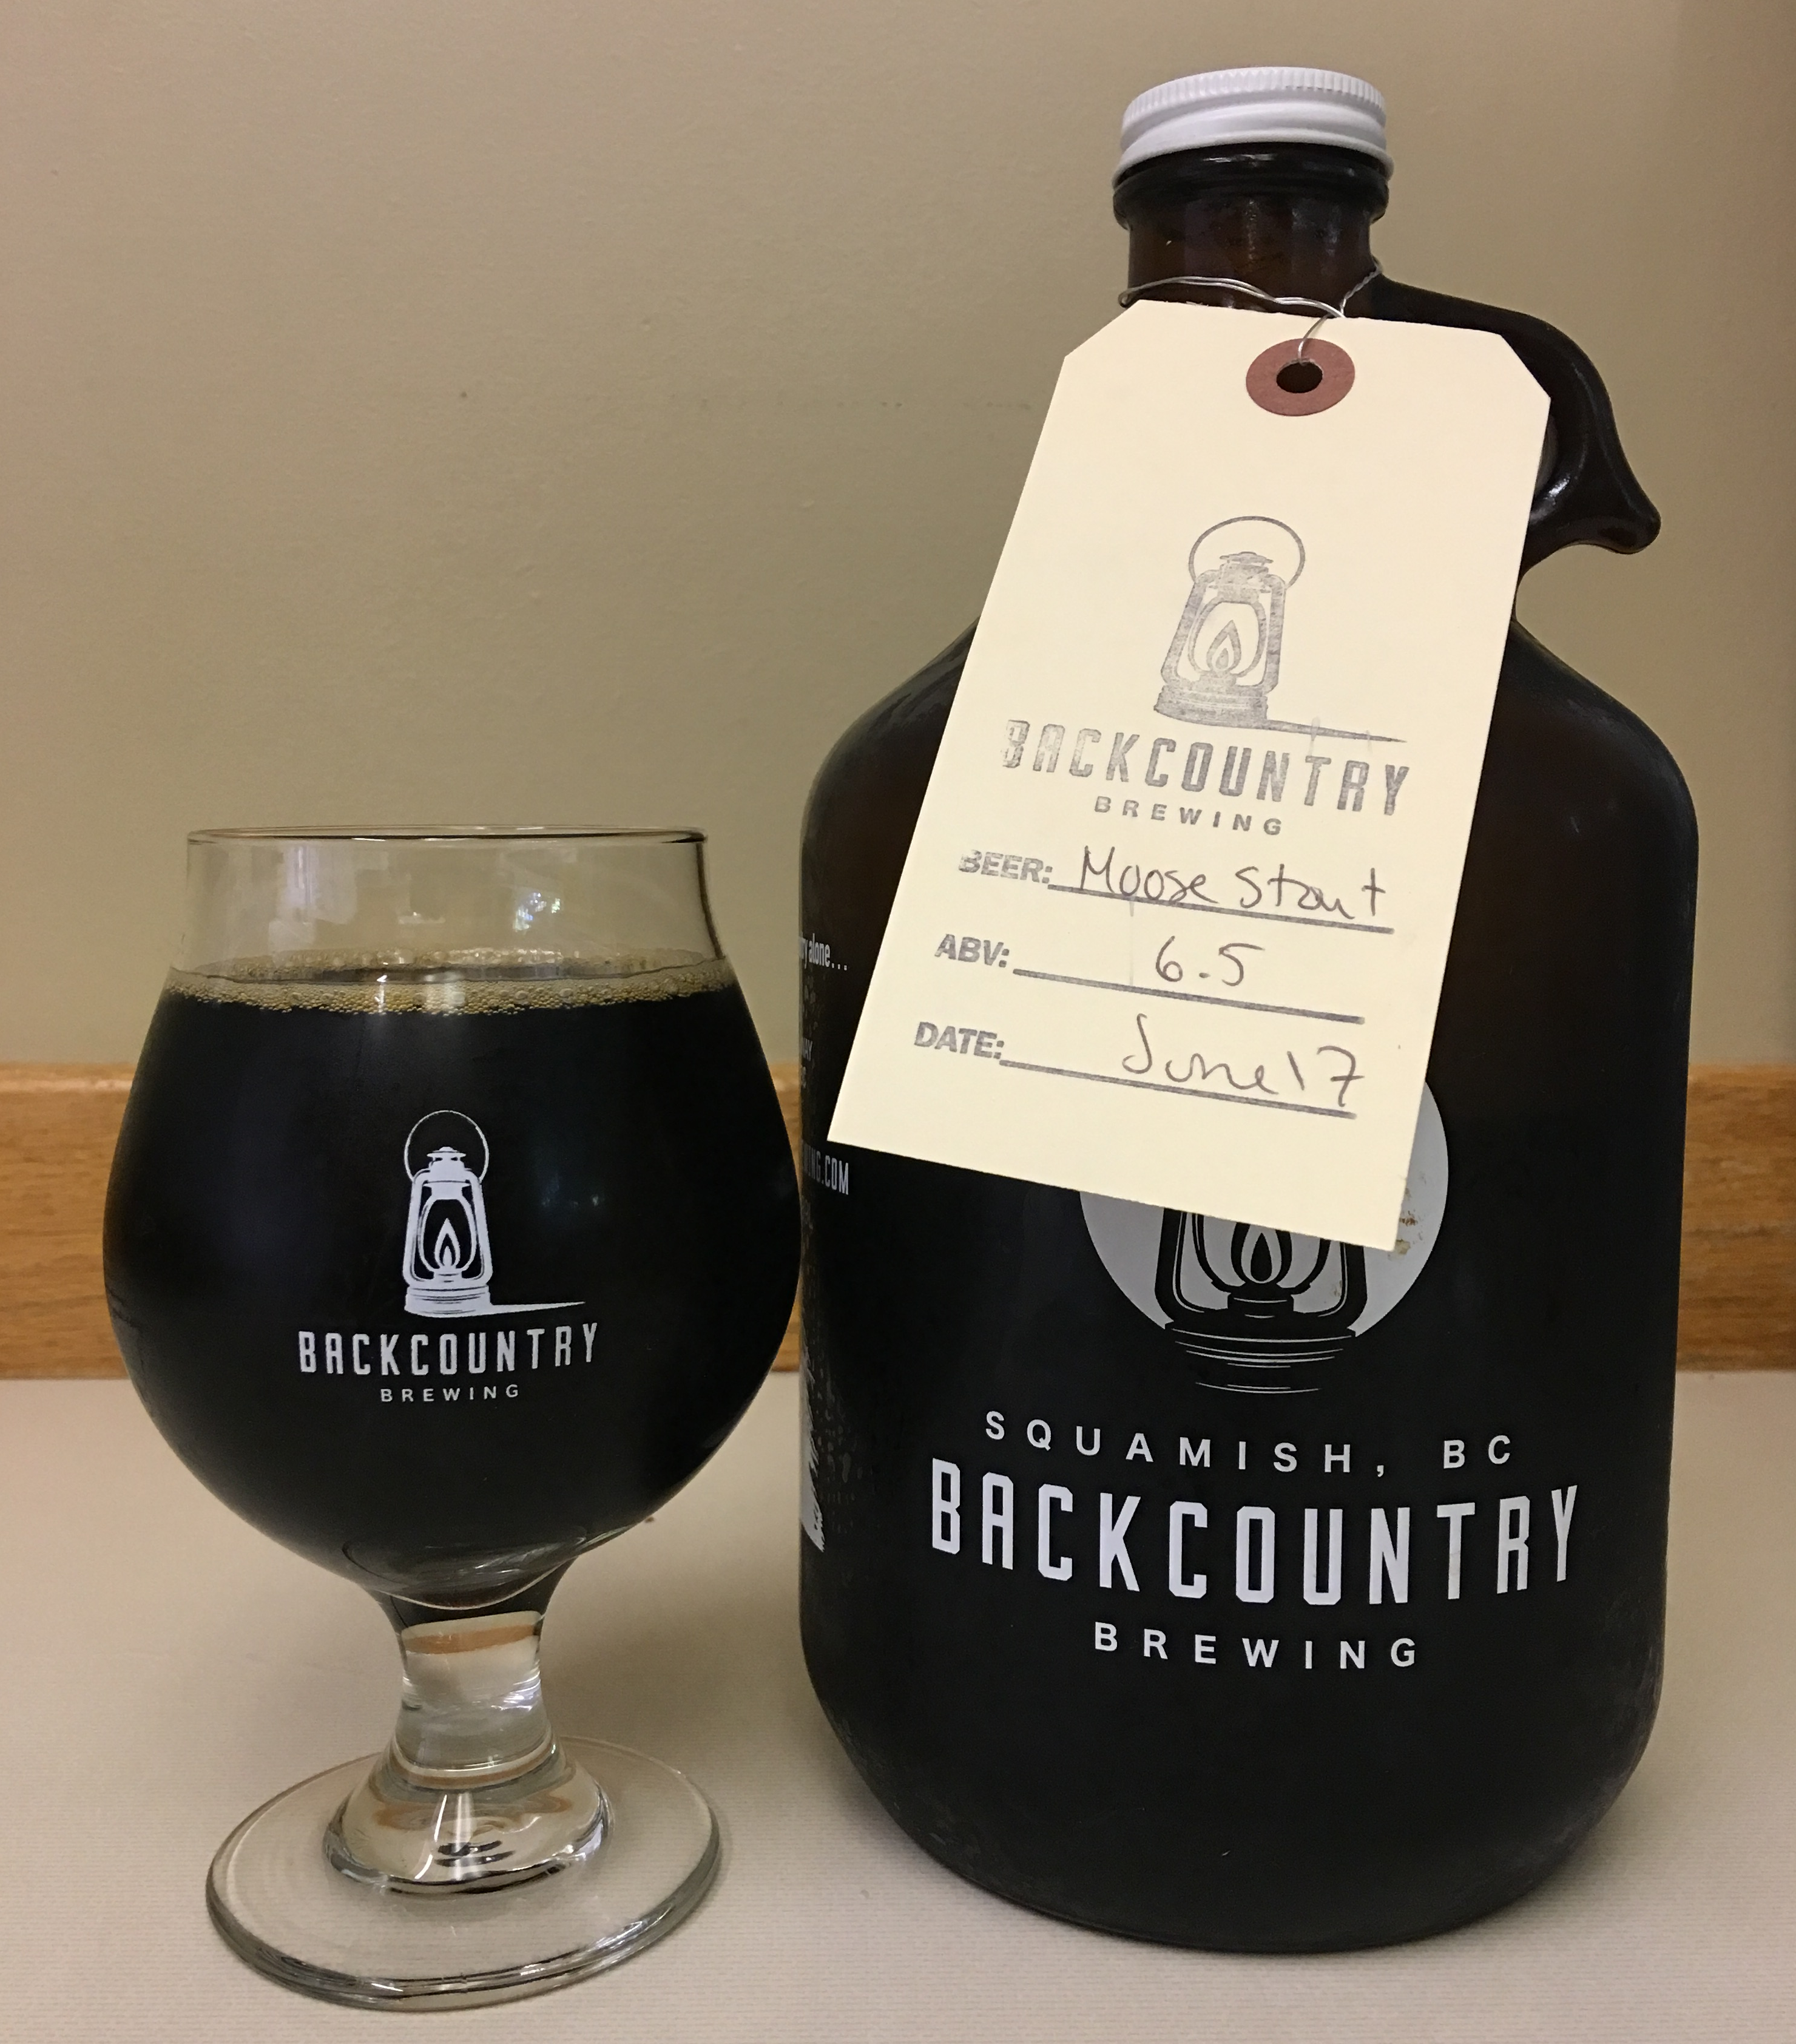 Dark Side of the Moose, a coffee milk stout by Backcountry Brewing